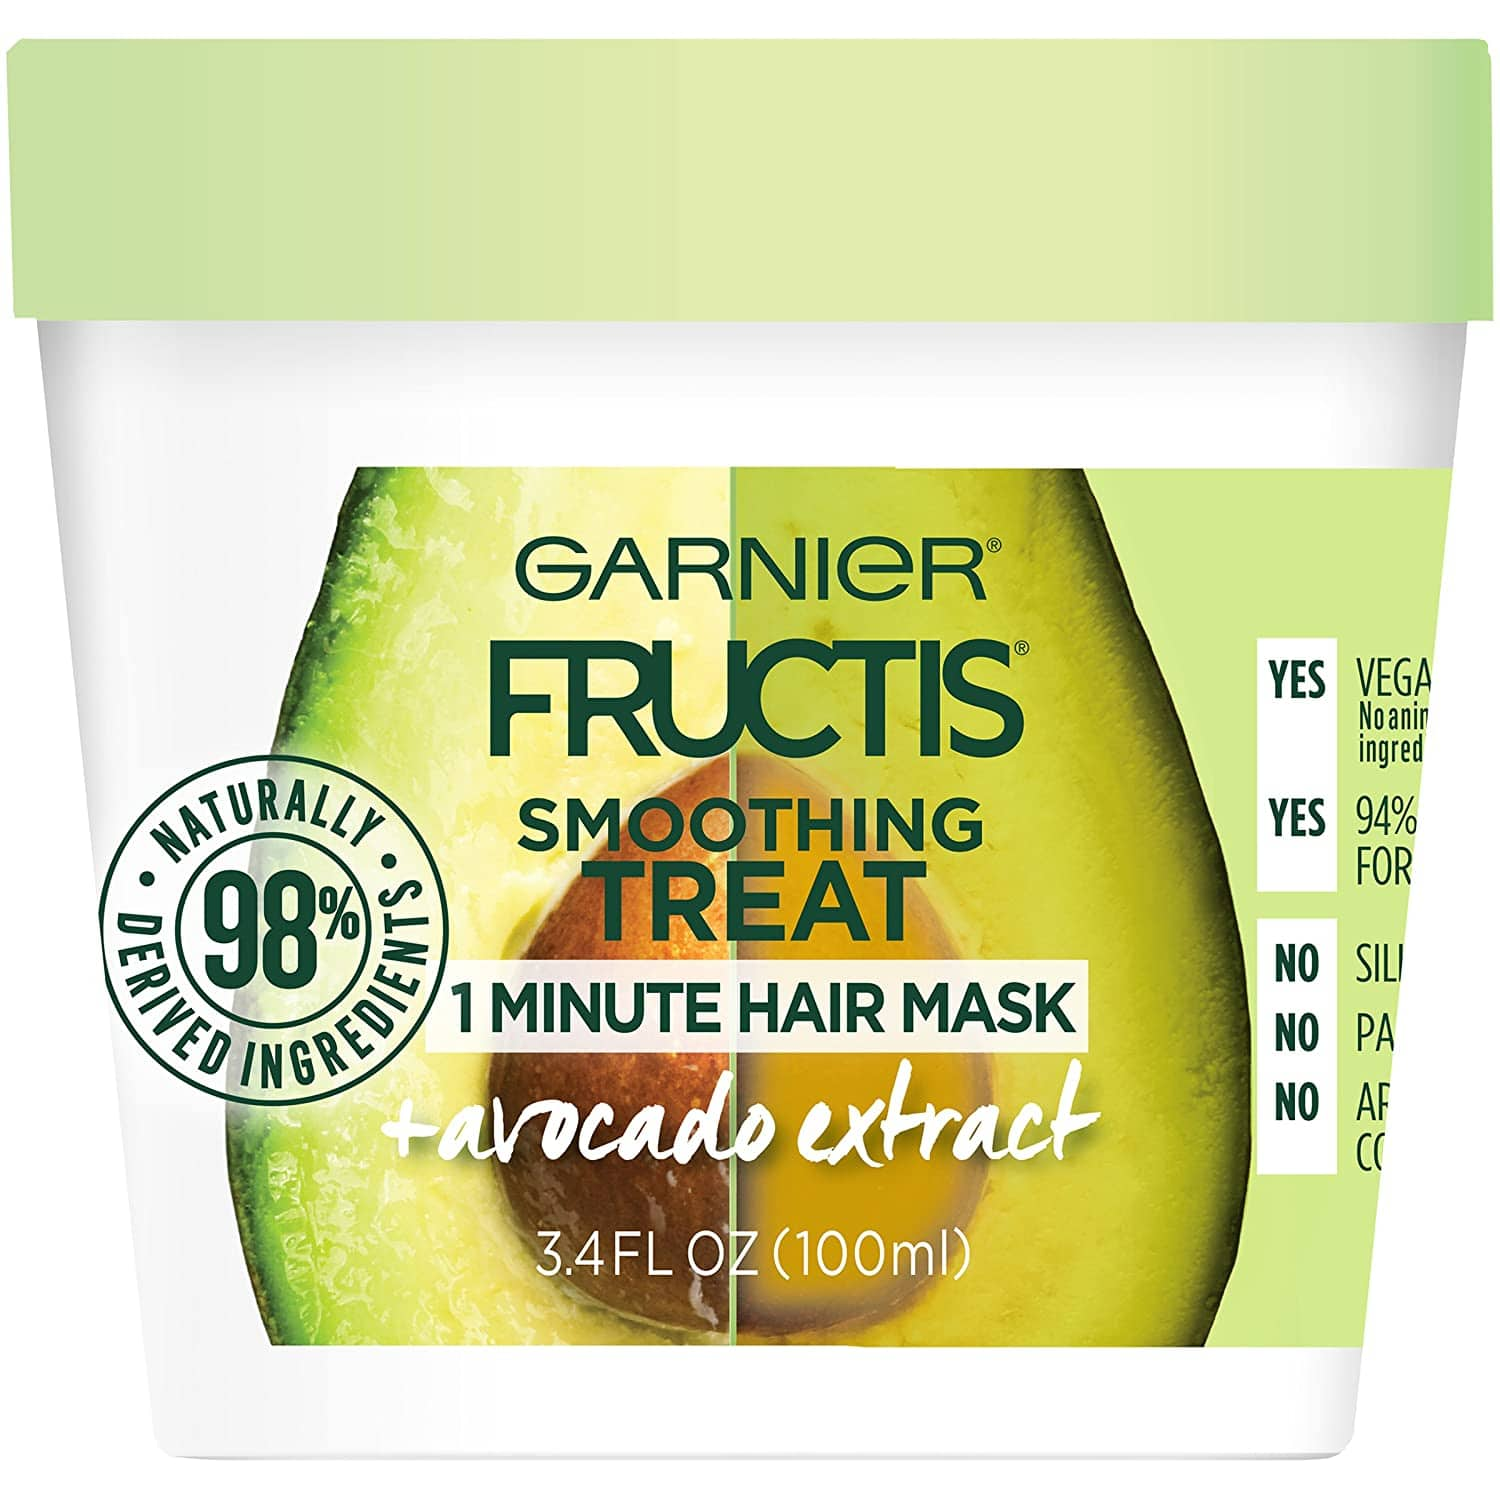 3.4-Oz Garnier Fructis Smoothing Treat 1 Minute Hair Mask w/ Avocado Extract $0.85 w/ S&S + Free Shipping w/ Prime or on $25+